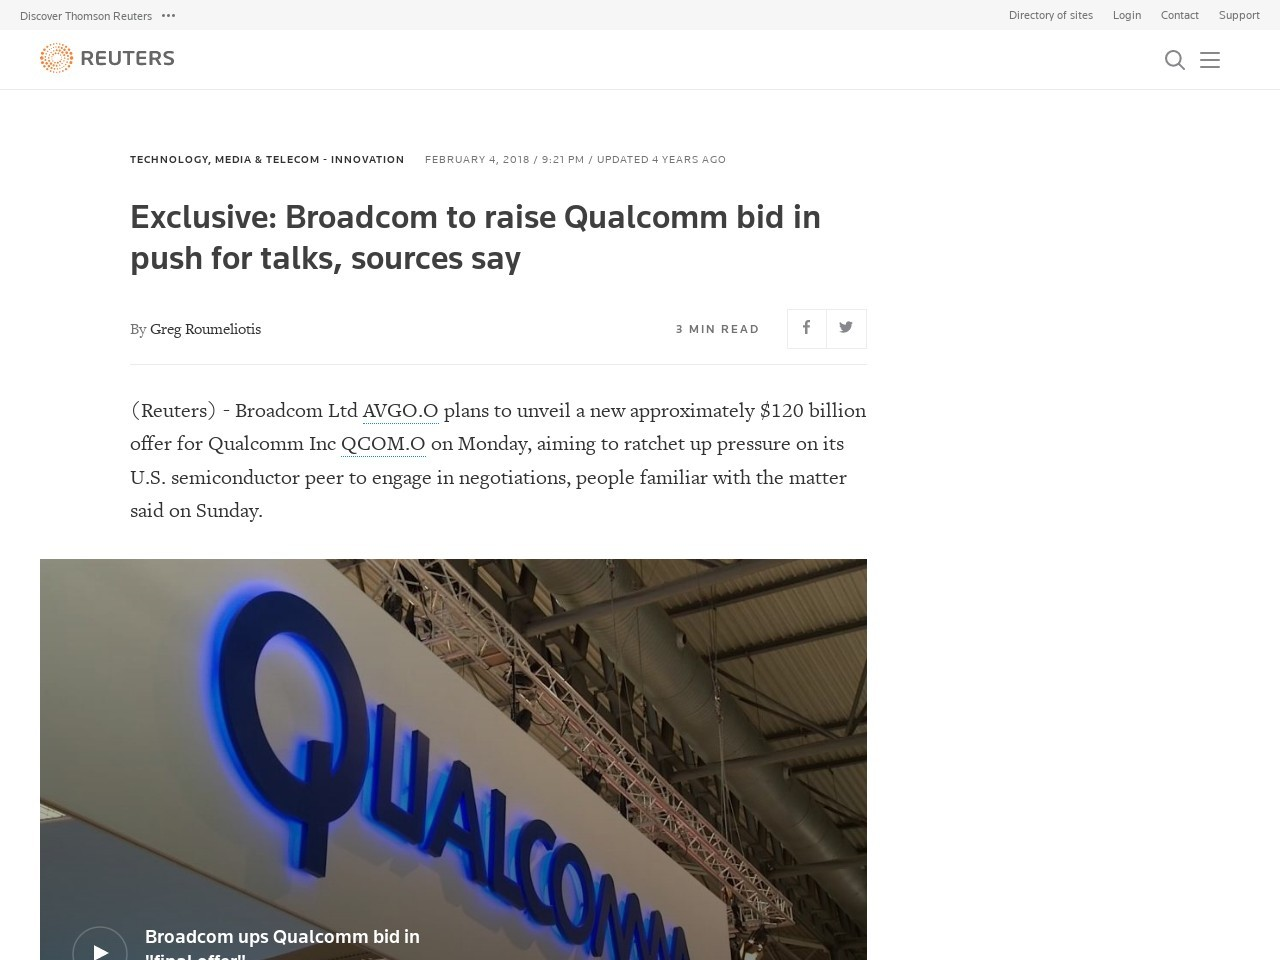 Exclusive: Broadcom to raise Qualcomm bid in push for talks, sources say